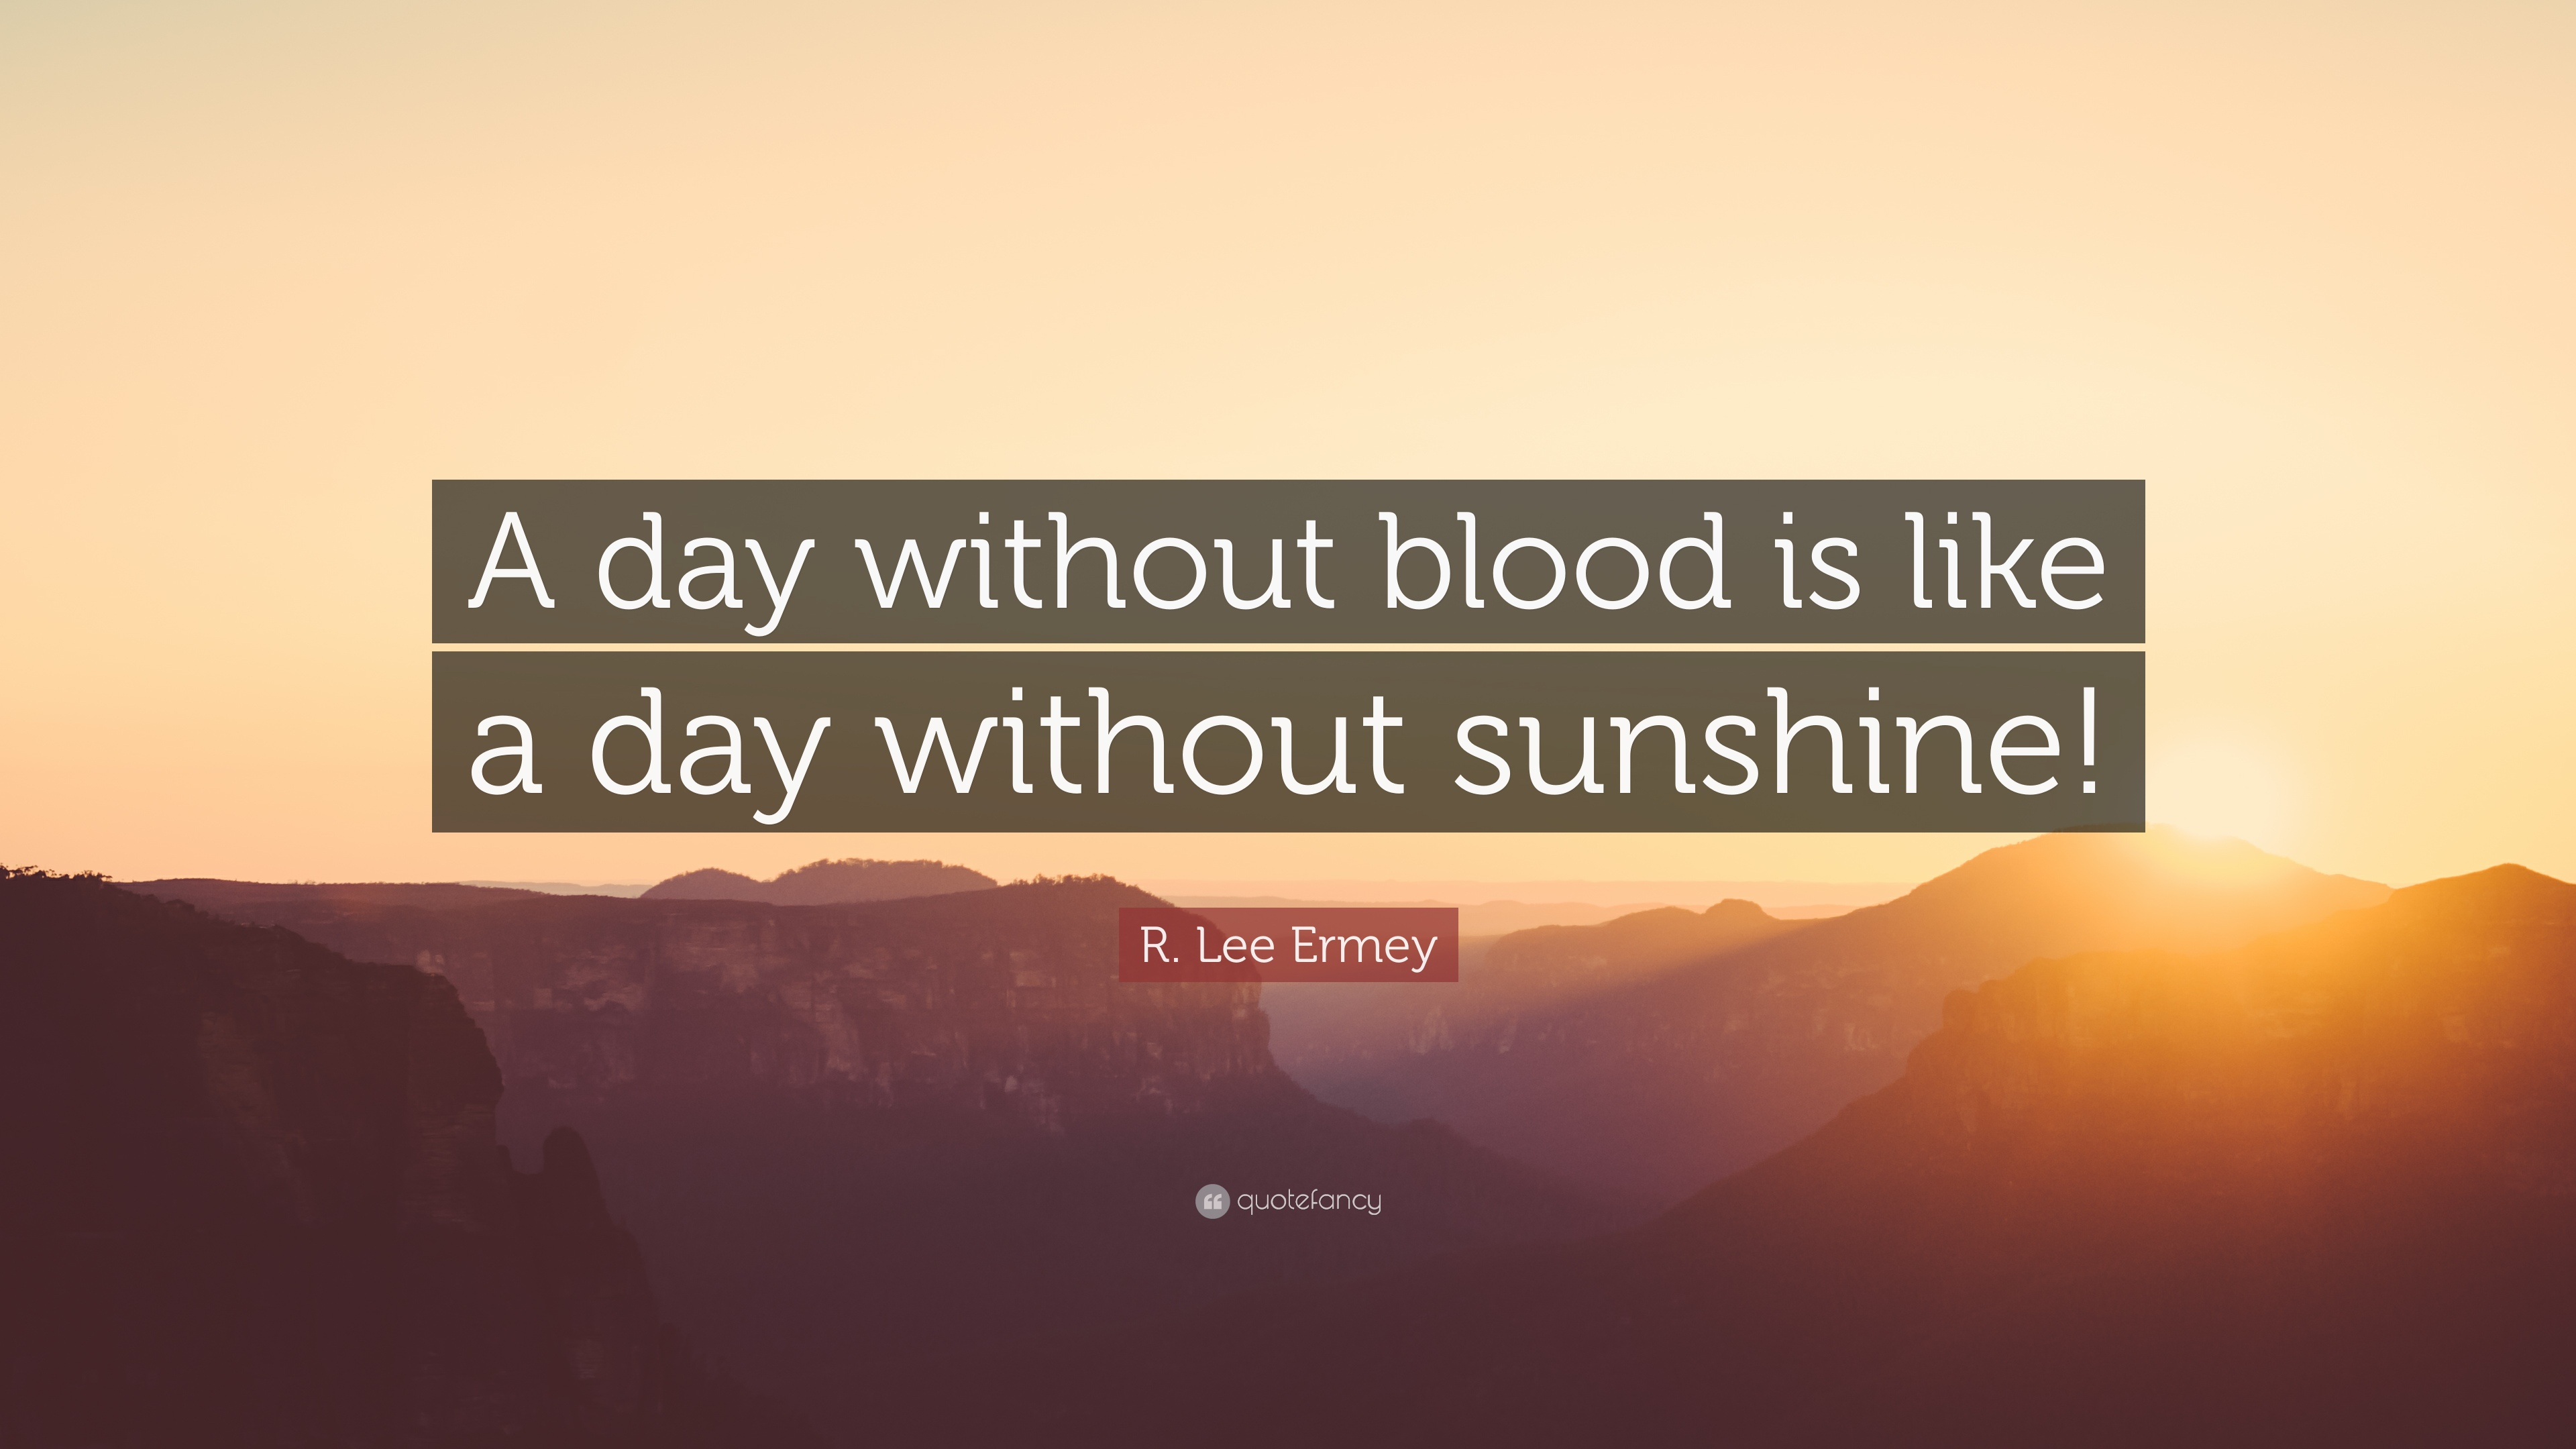 day without sunshine A day without sunshinefunny quote by steve martin filmed in gumusluk, turkey.